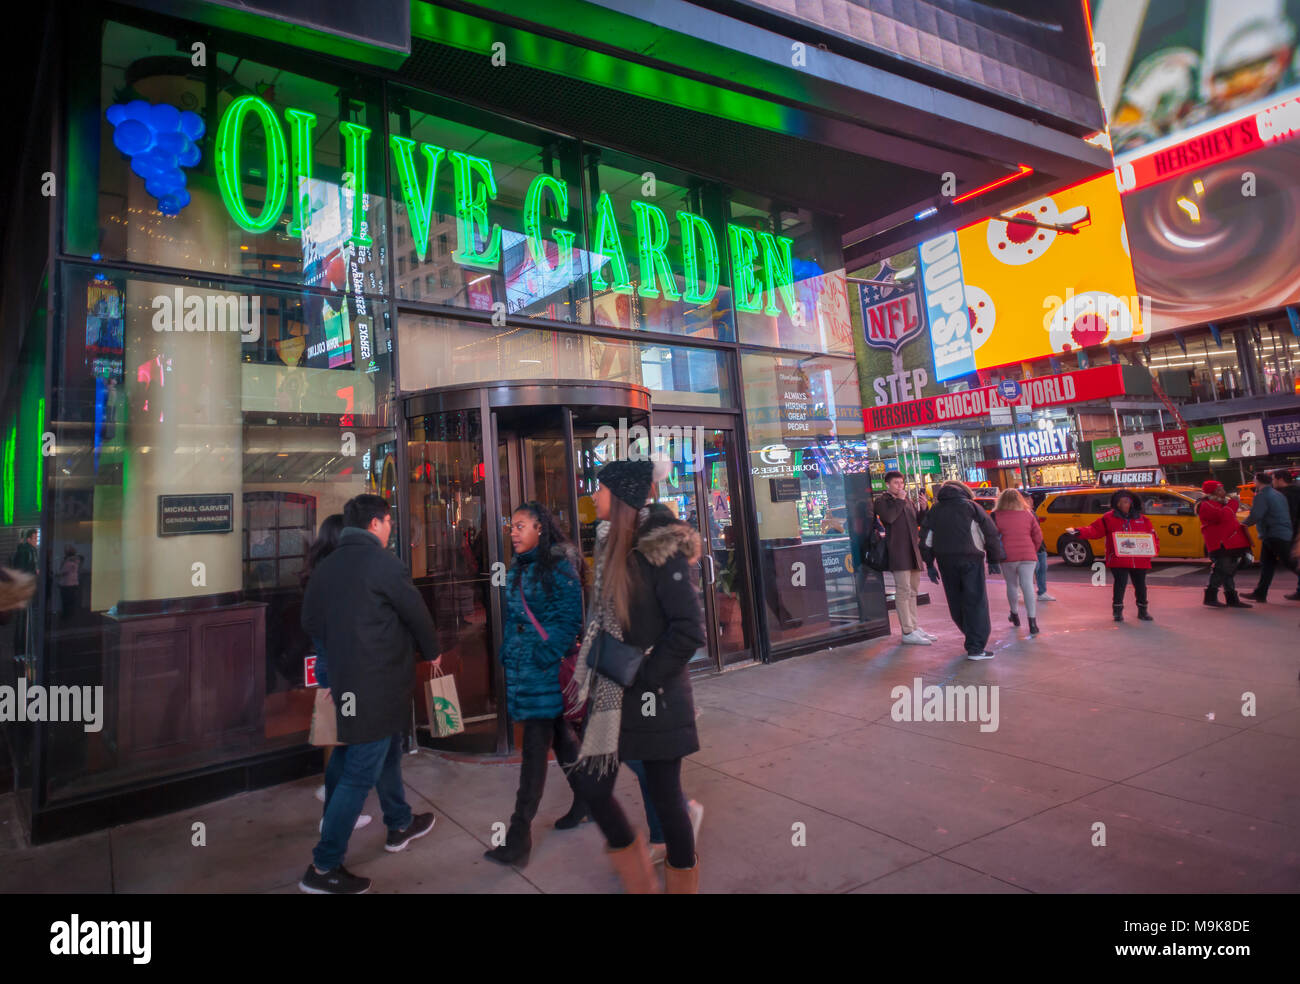 Darden restaurants stock photos darden restaurants stock images alamy Olive garden italian restaurant new york ny